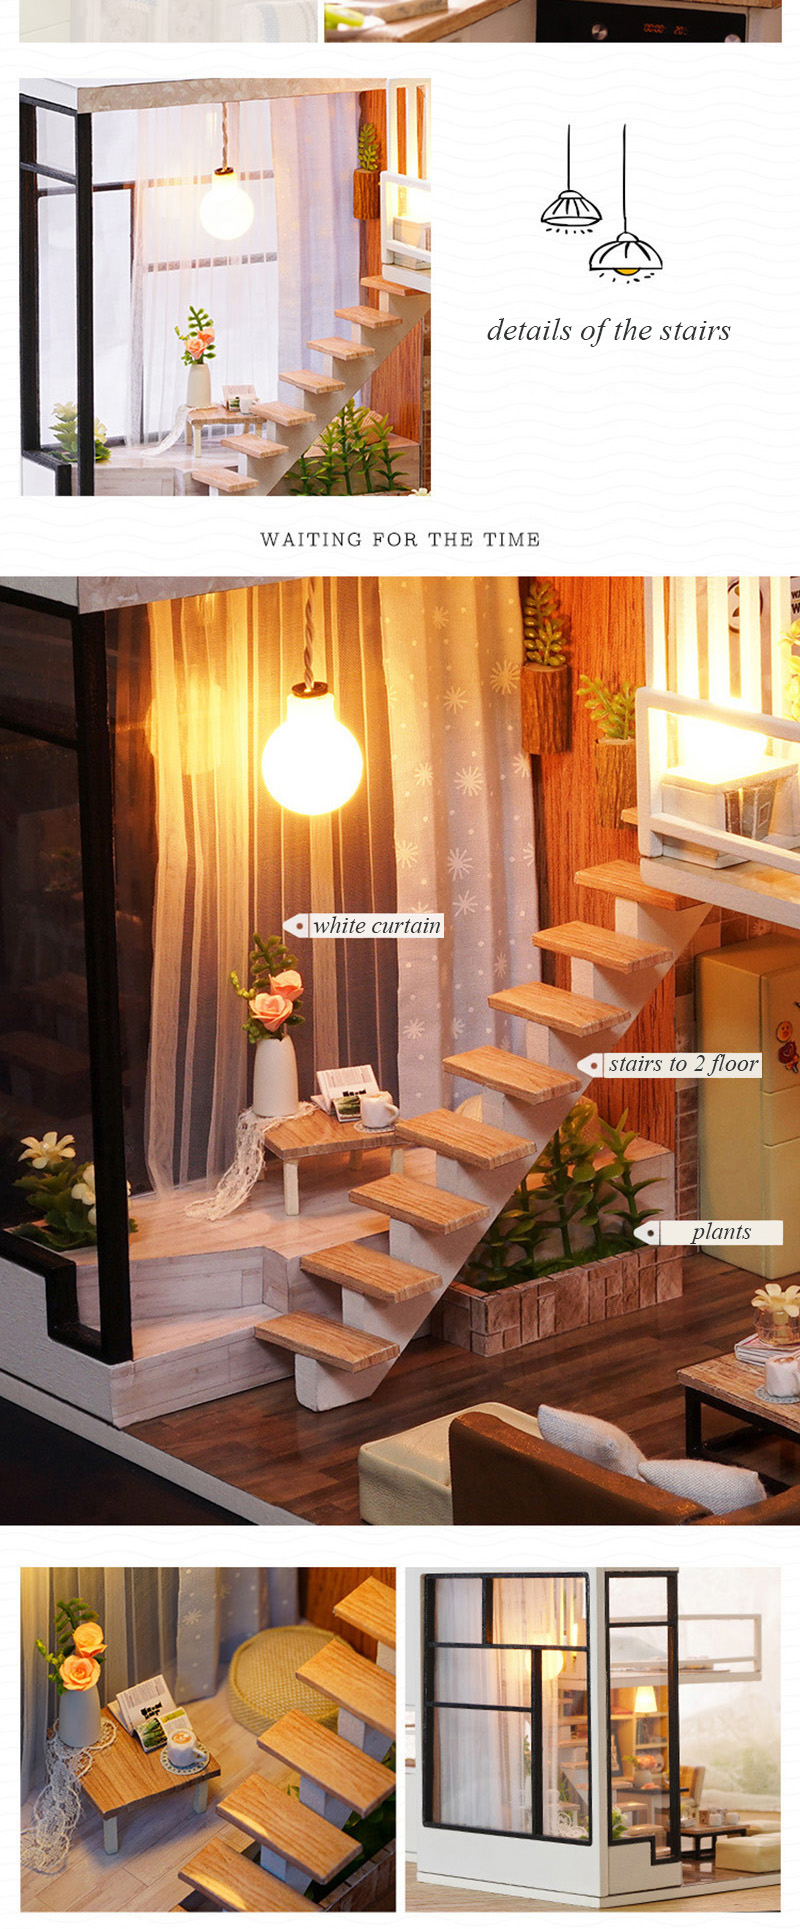 Wooden Miniature DIY Doll House Toy Assemble Kits 3D Miniature Dollhouse Toys With Furniture Lights for Birthday Gift L020 - Waiting Time (9)